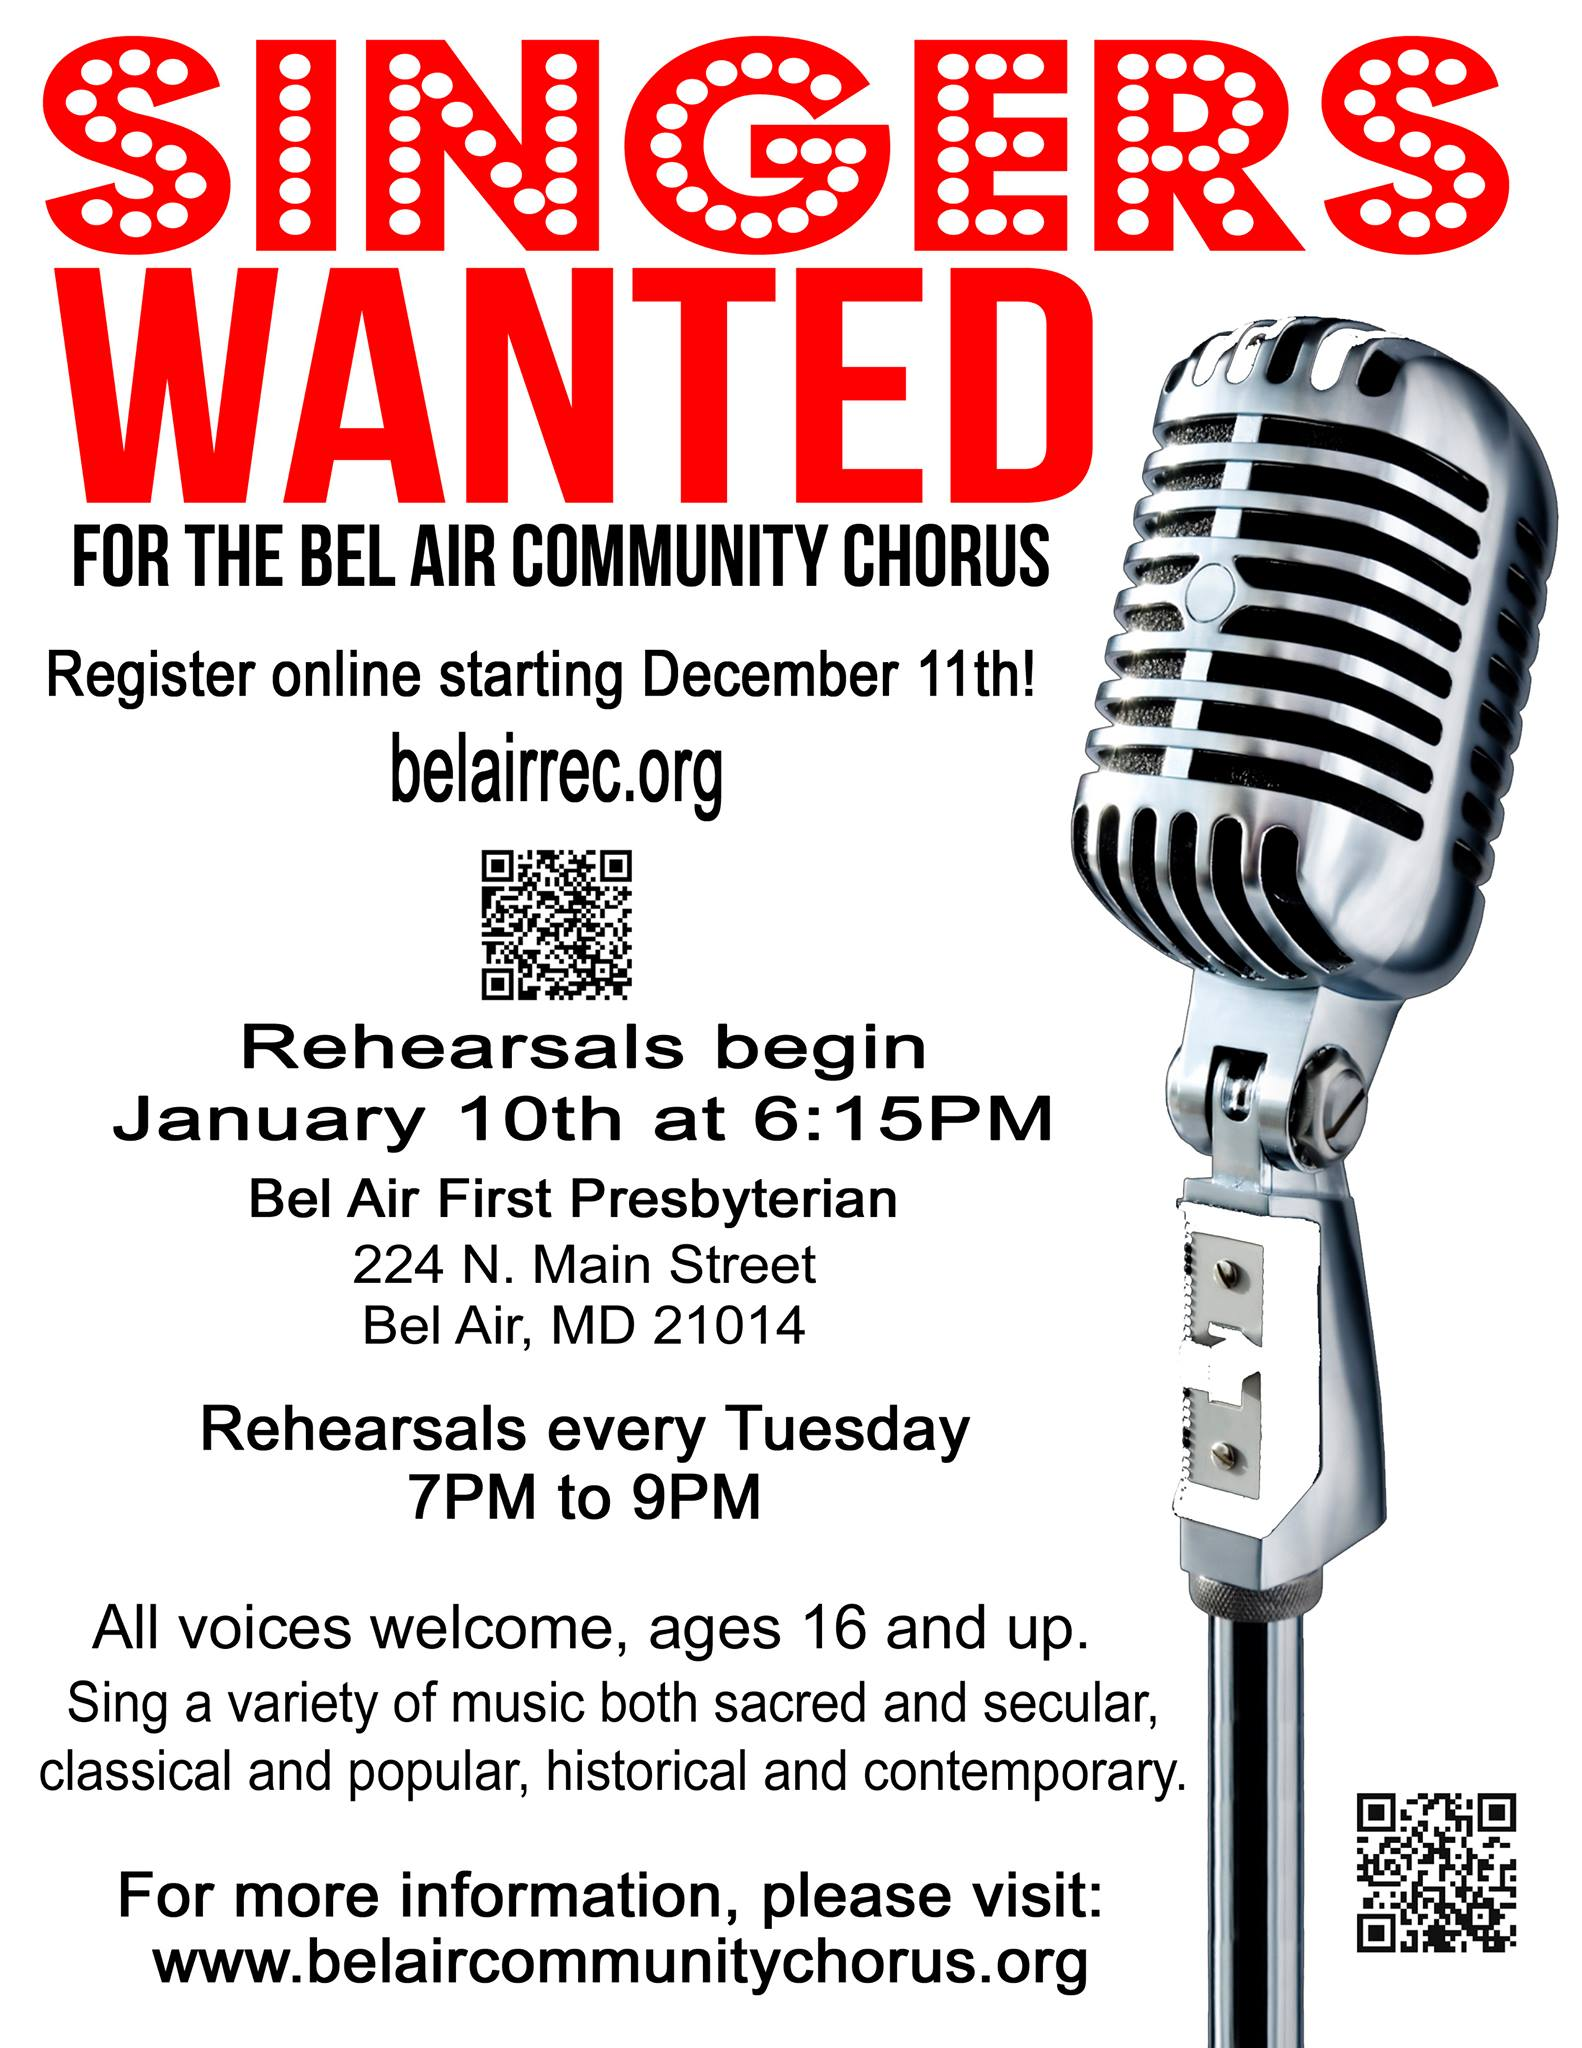 Singers wanted for the Bel Air Community Chorus.  Register online at belairrec.org